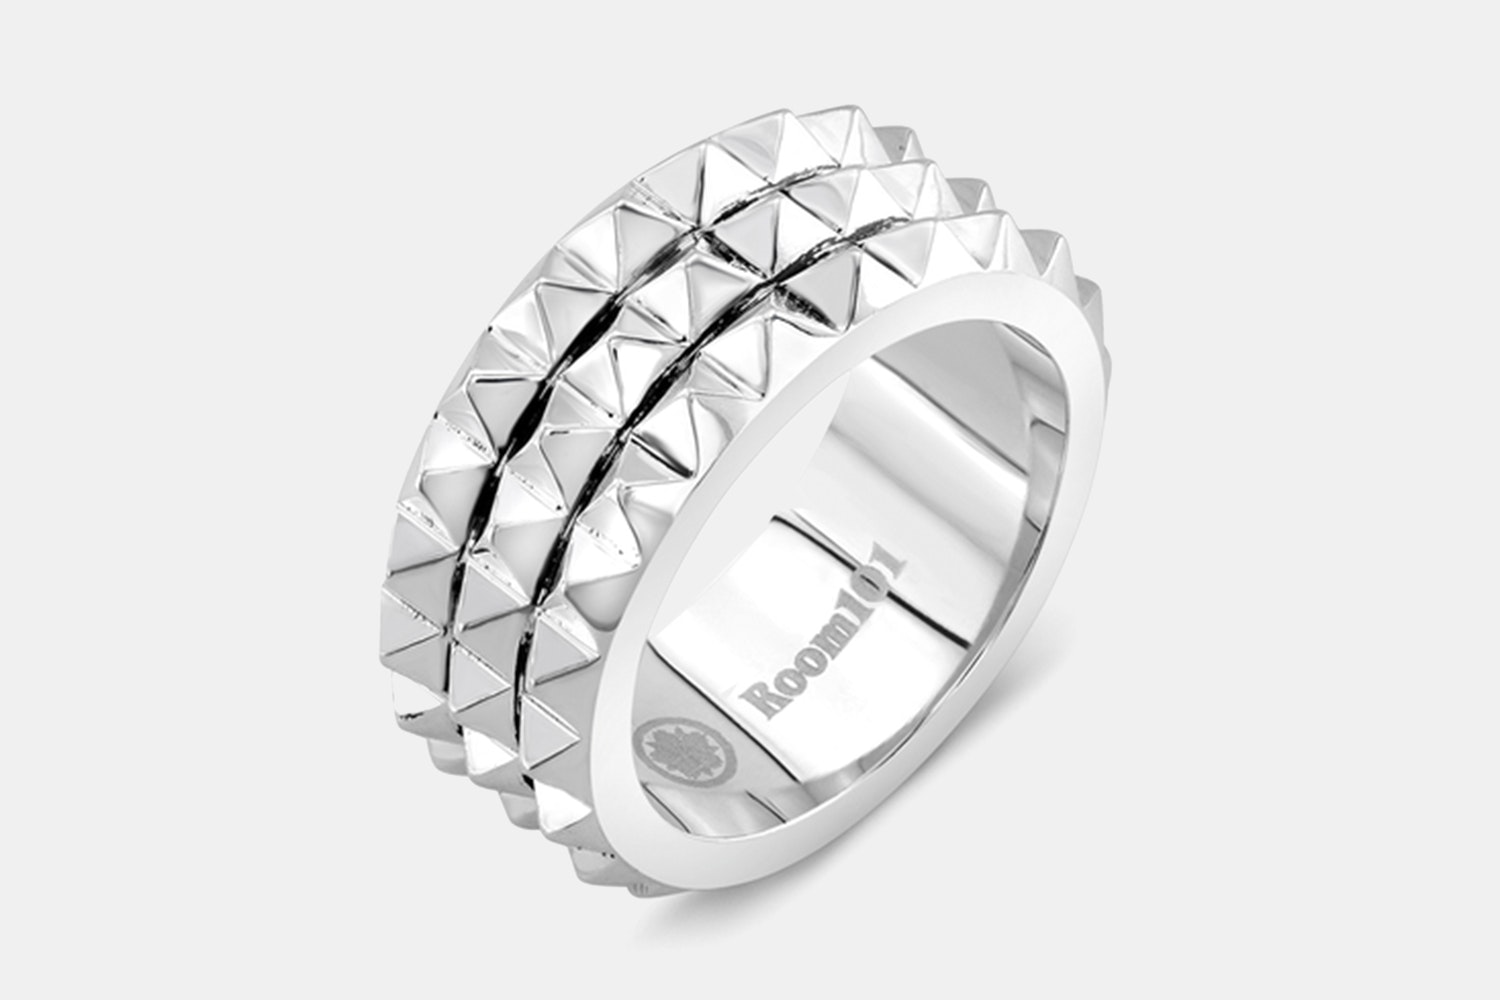 Multi Spike Stainless Steel Ring - Stainless Steel